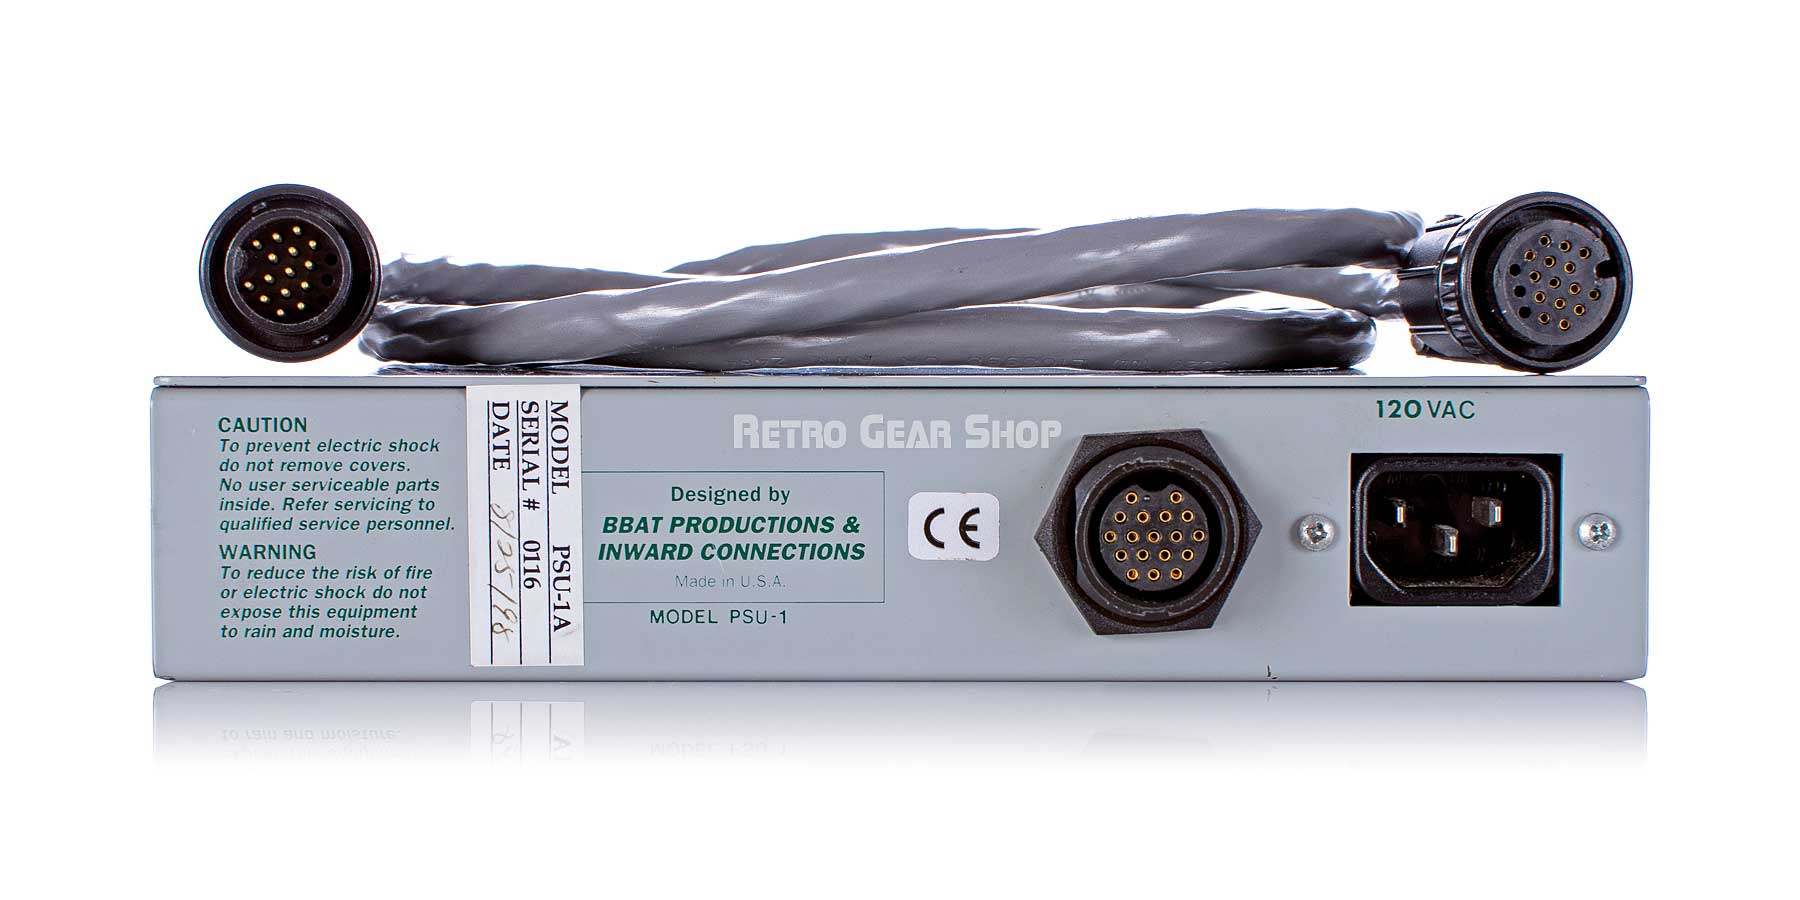 Inward Connections VacRac 4000 Power Supply Rear